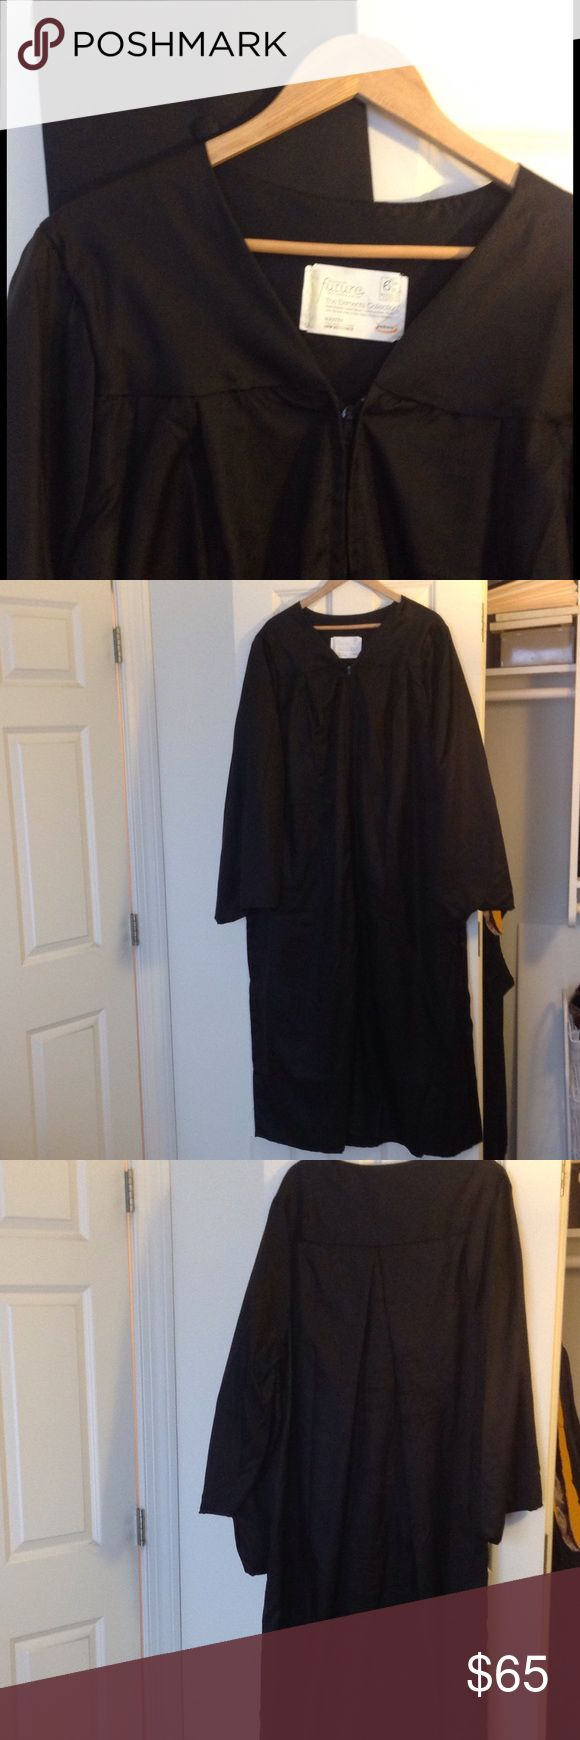 "Jostens graduation cap and gown 100% acetate black graduation gown/robe with matching cap. Zip front. For 6'1"" to 6'3"". Worn once. Unisex. Jostens Dresses"